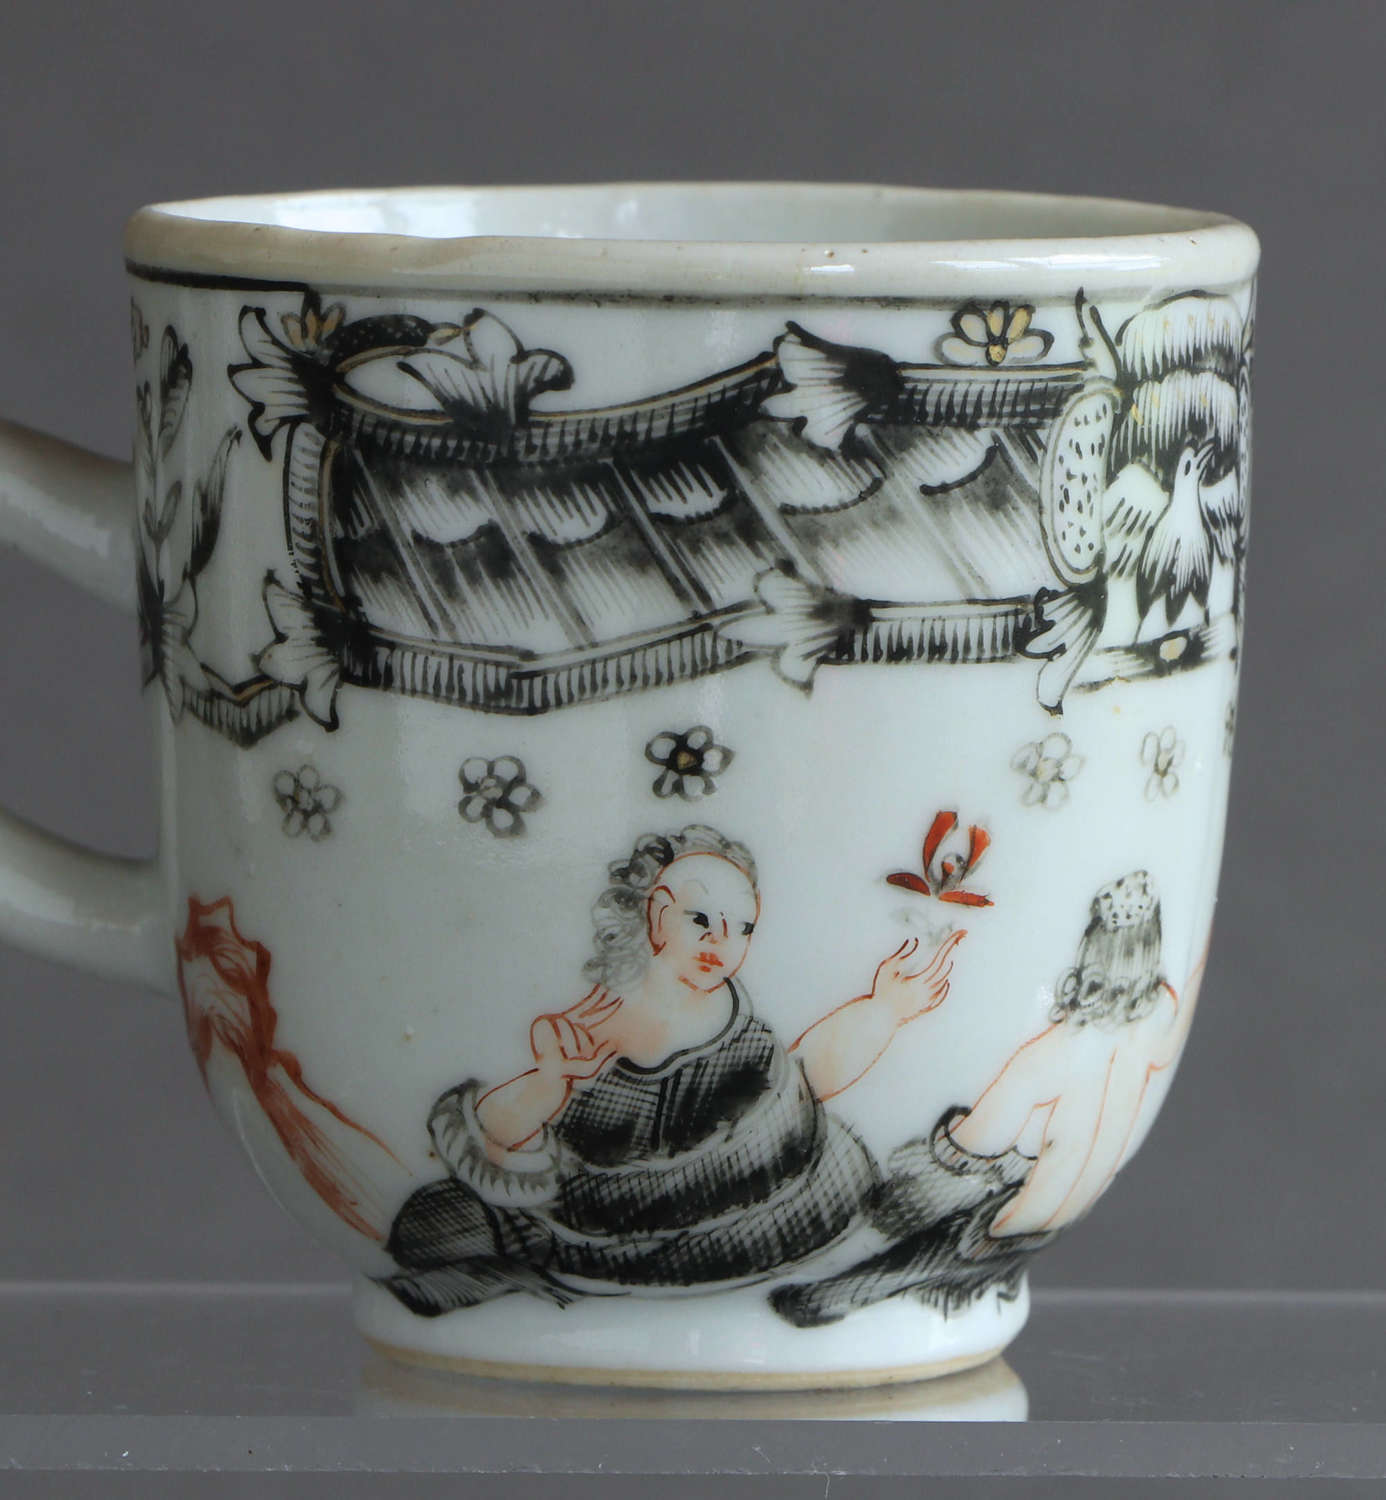 A Chinese export coffee cup with European or mythological scene c1750